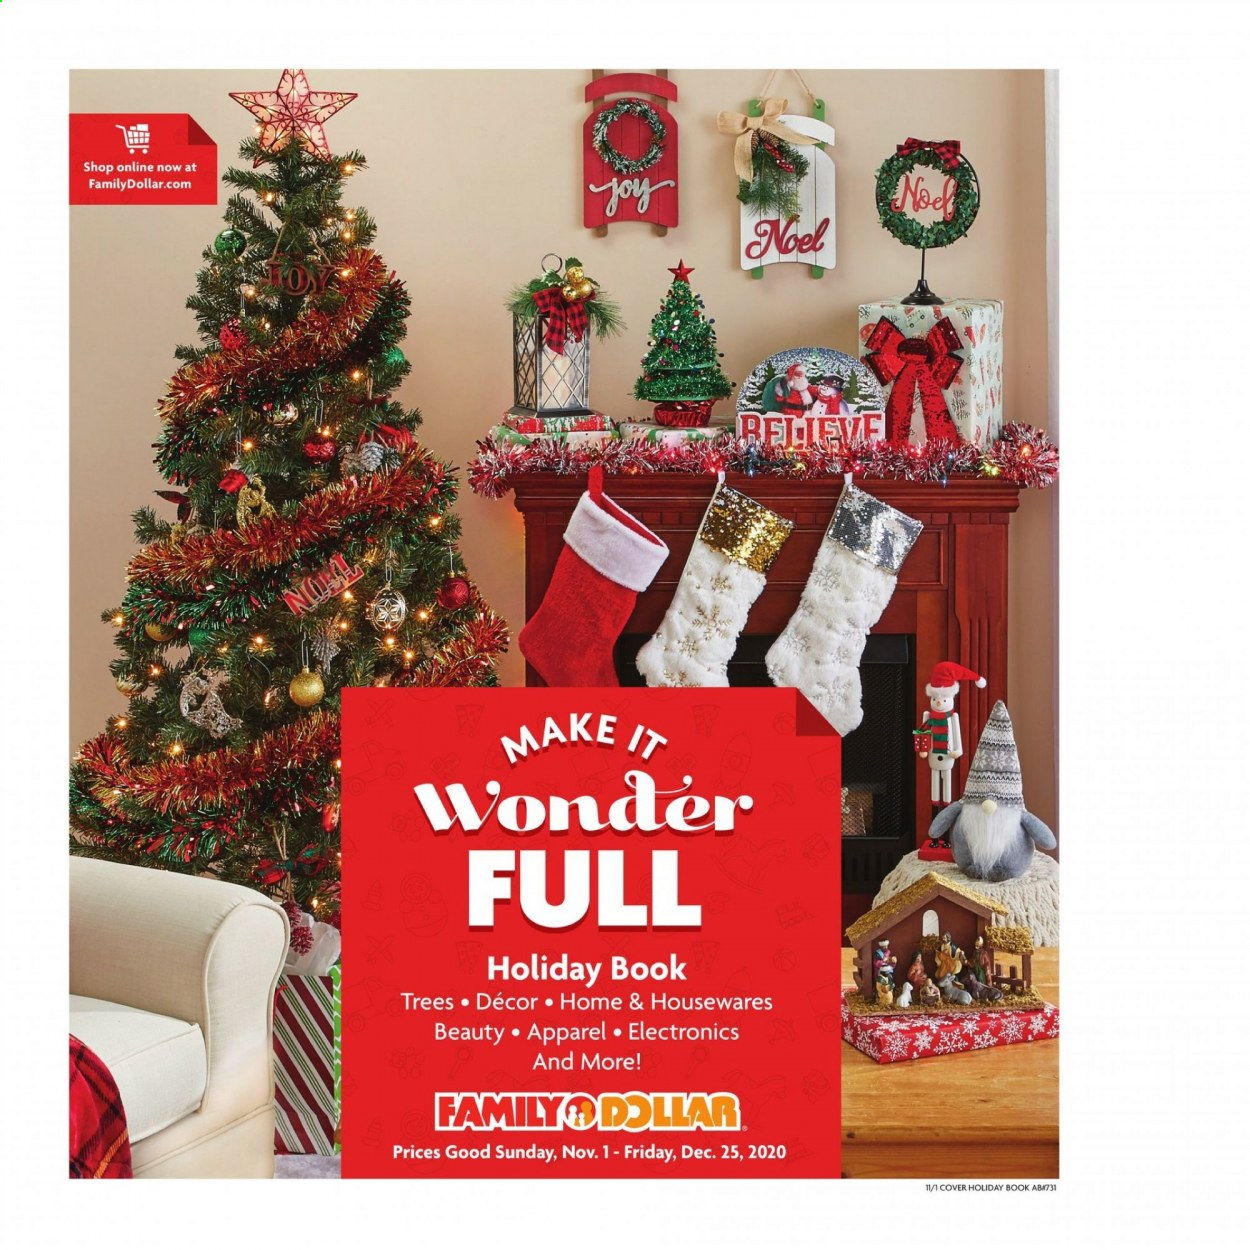 Family Dollar Flyer - 11.01.2020 - 12.25.2020 - Sales products - book. Page 1.